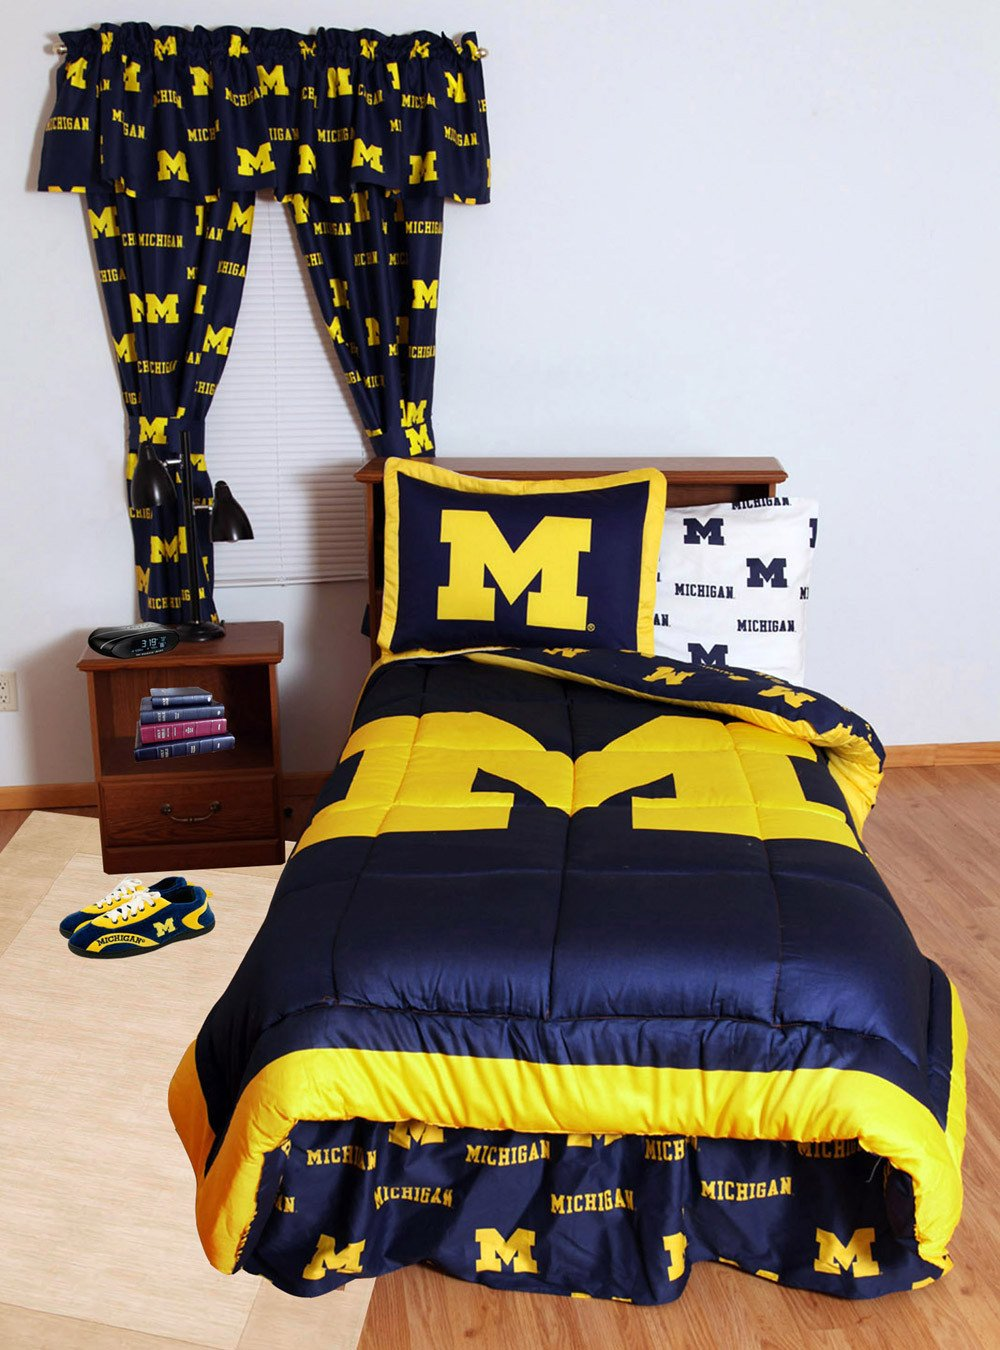 Michigan Bed in a Bag Queen - With White Sheets - MICBBQUW by College Covers from College Covers